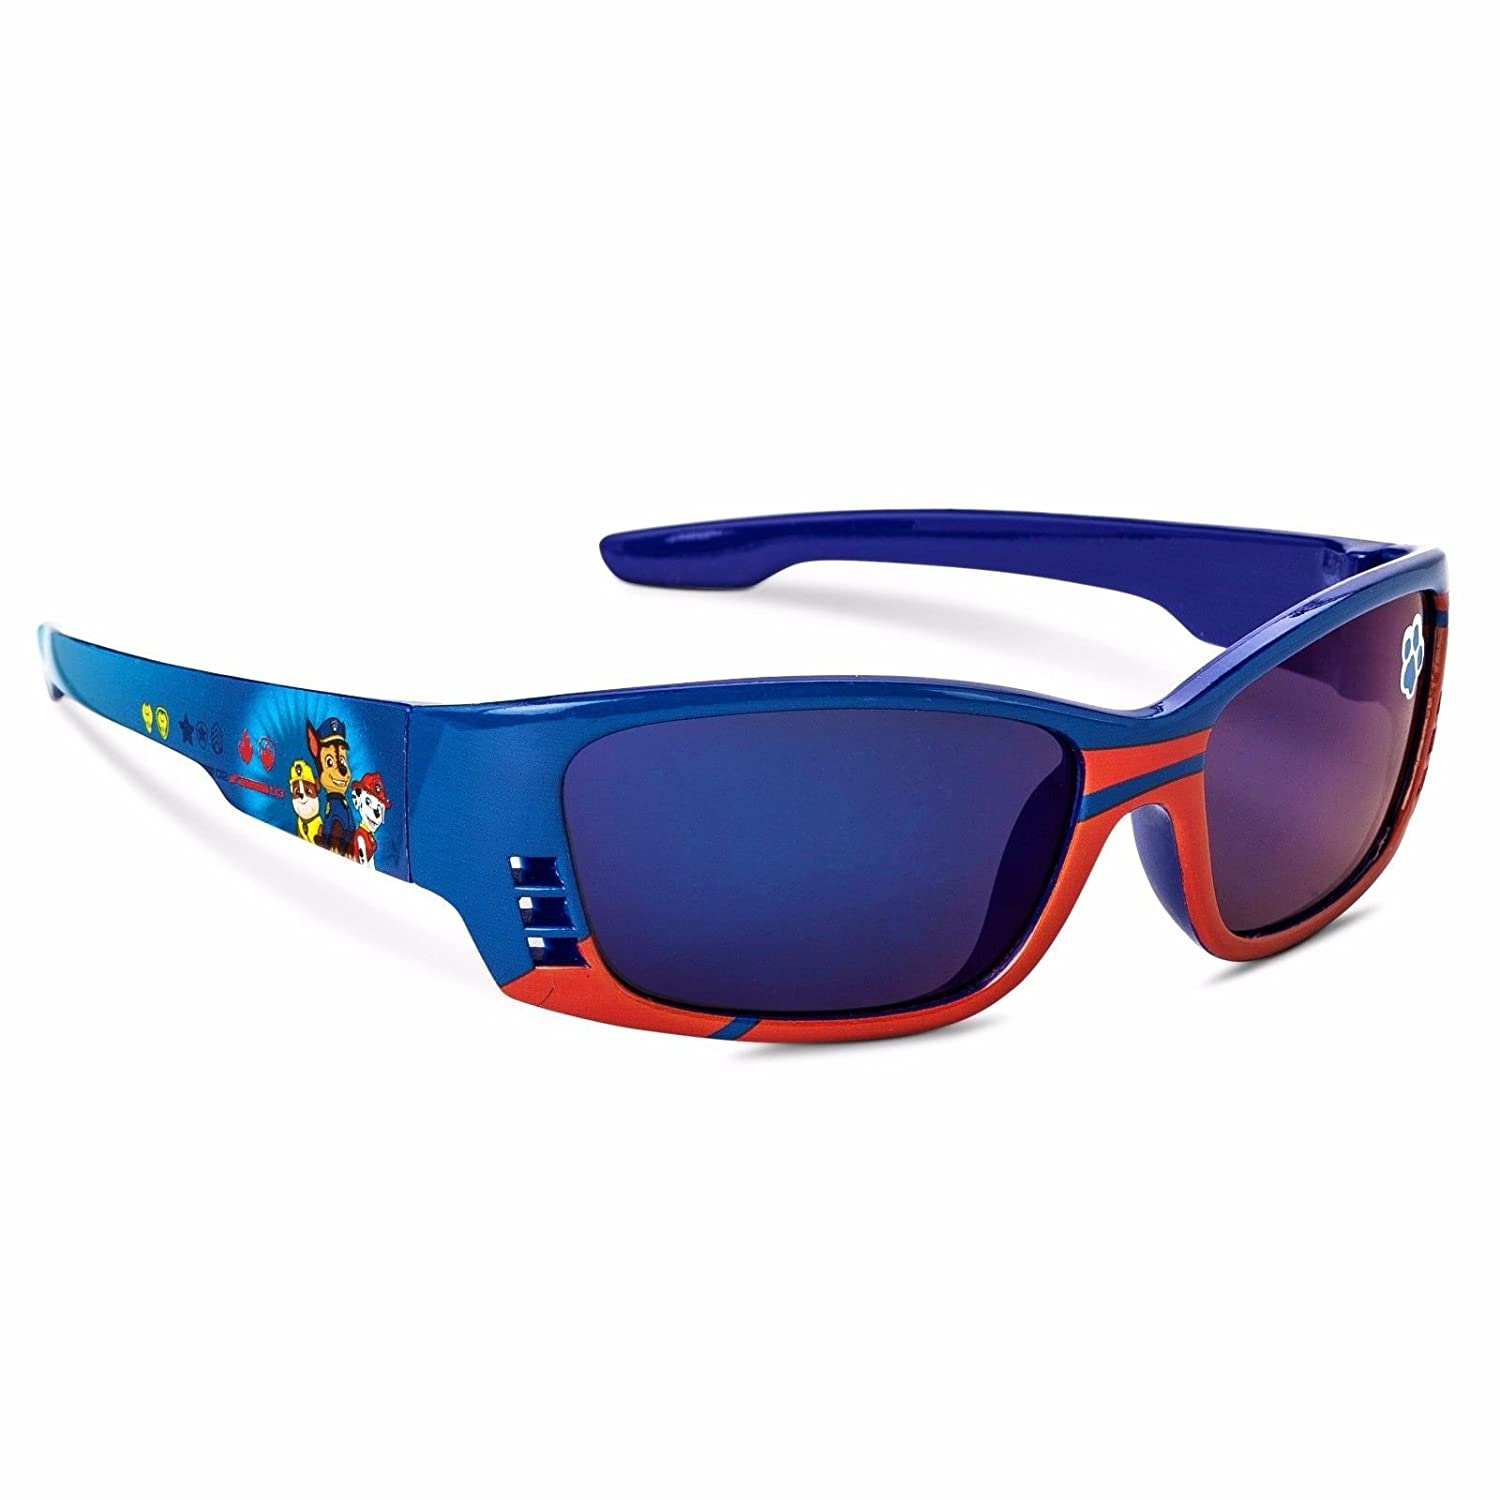 8b3420603d Amazon.com  Paw Patrol Nickelodeon Boys Sunglasses RED BLUE  Clothing